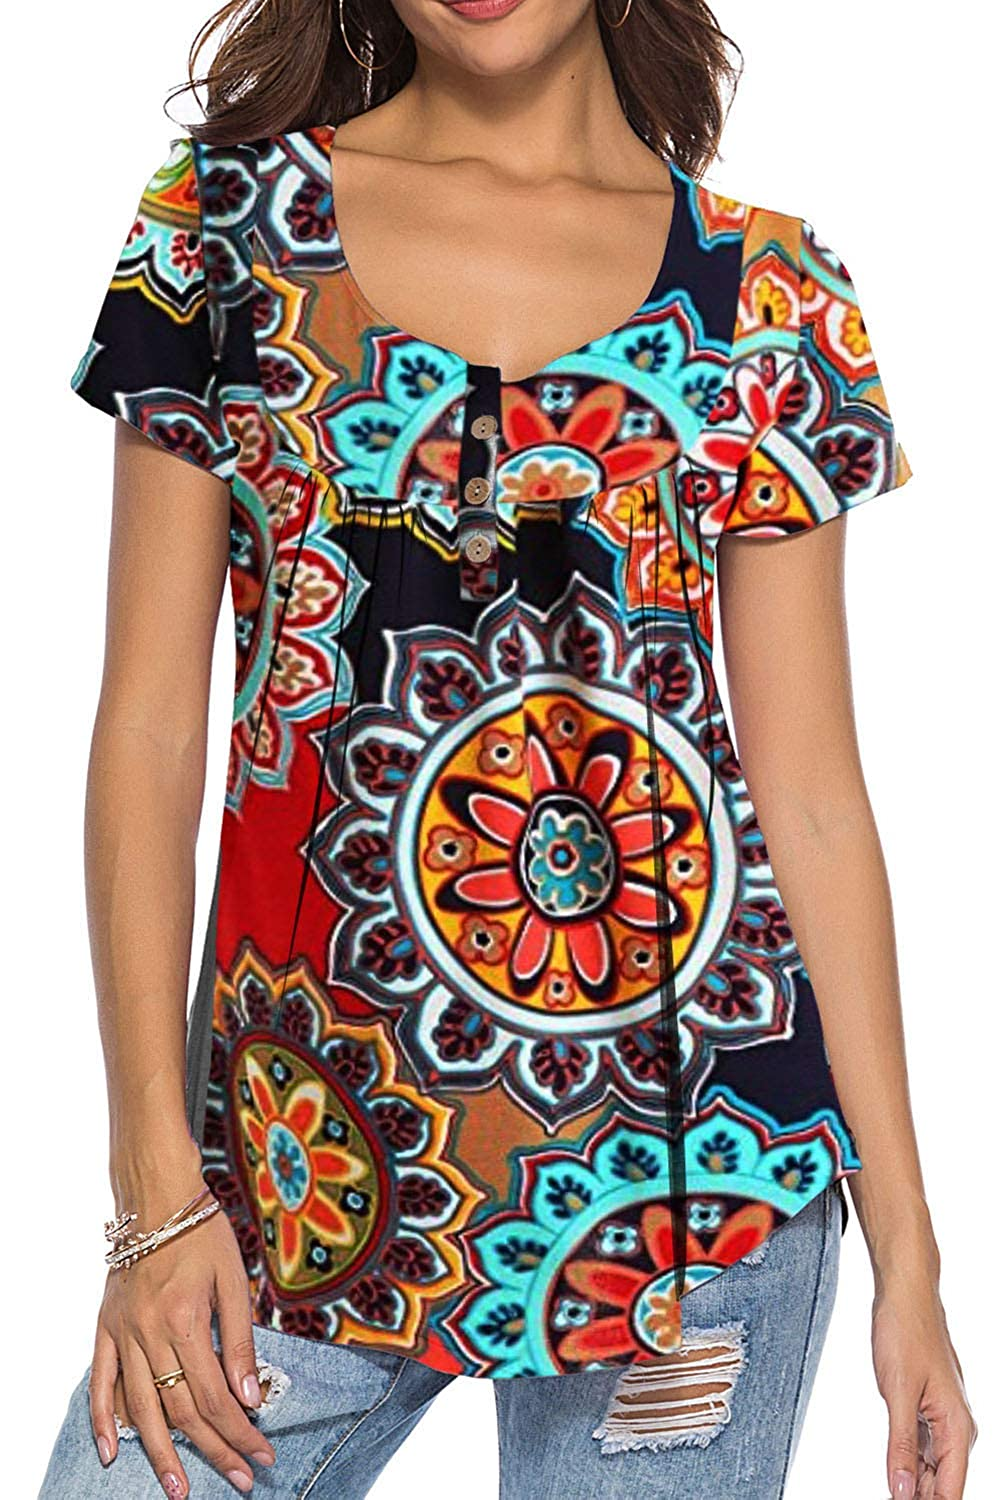 0orange Flowers Neitade Women's Shirts and Blouses Short Sleeve Button Up Tunic Tops